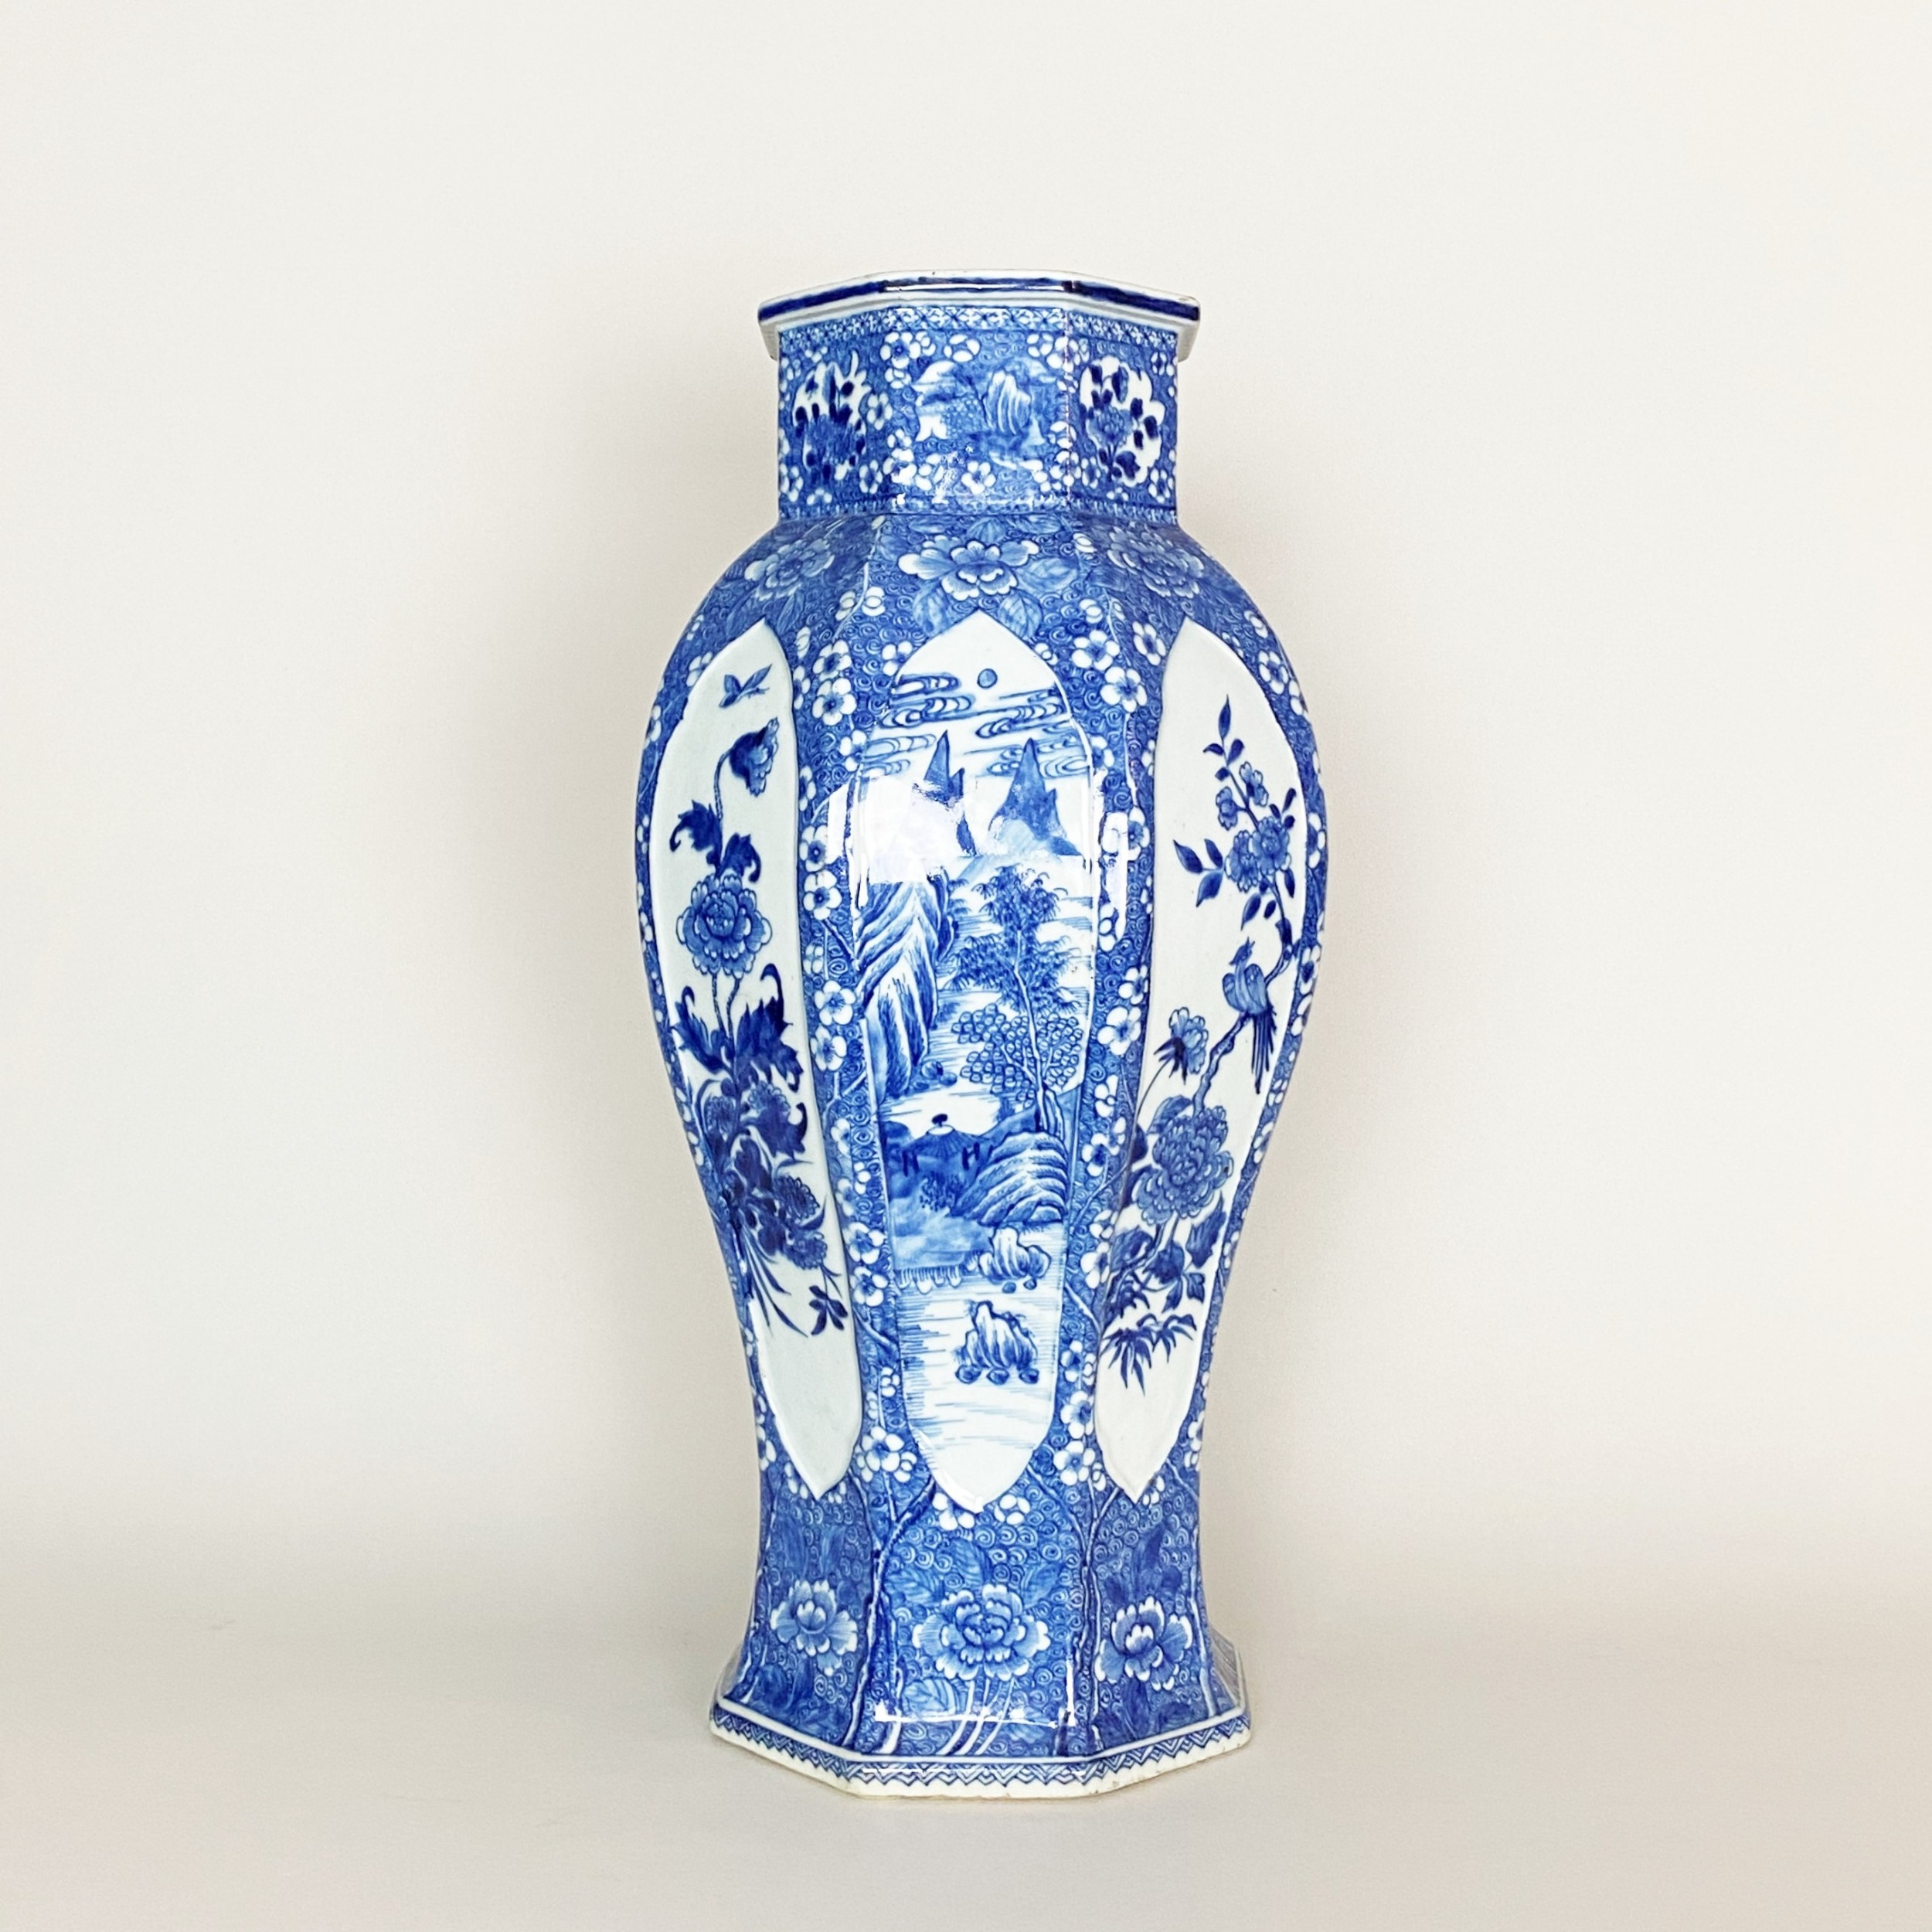 an large 18th century blue and white vase chien lung